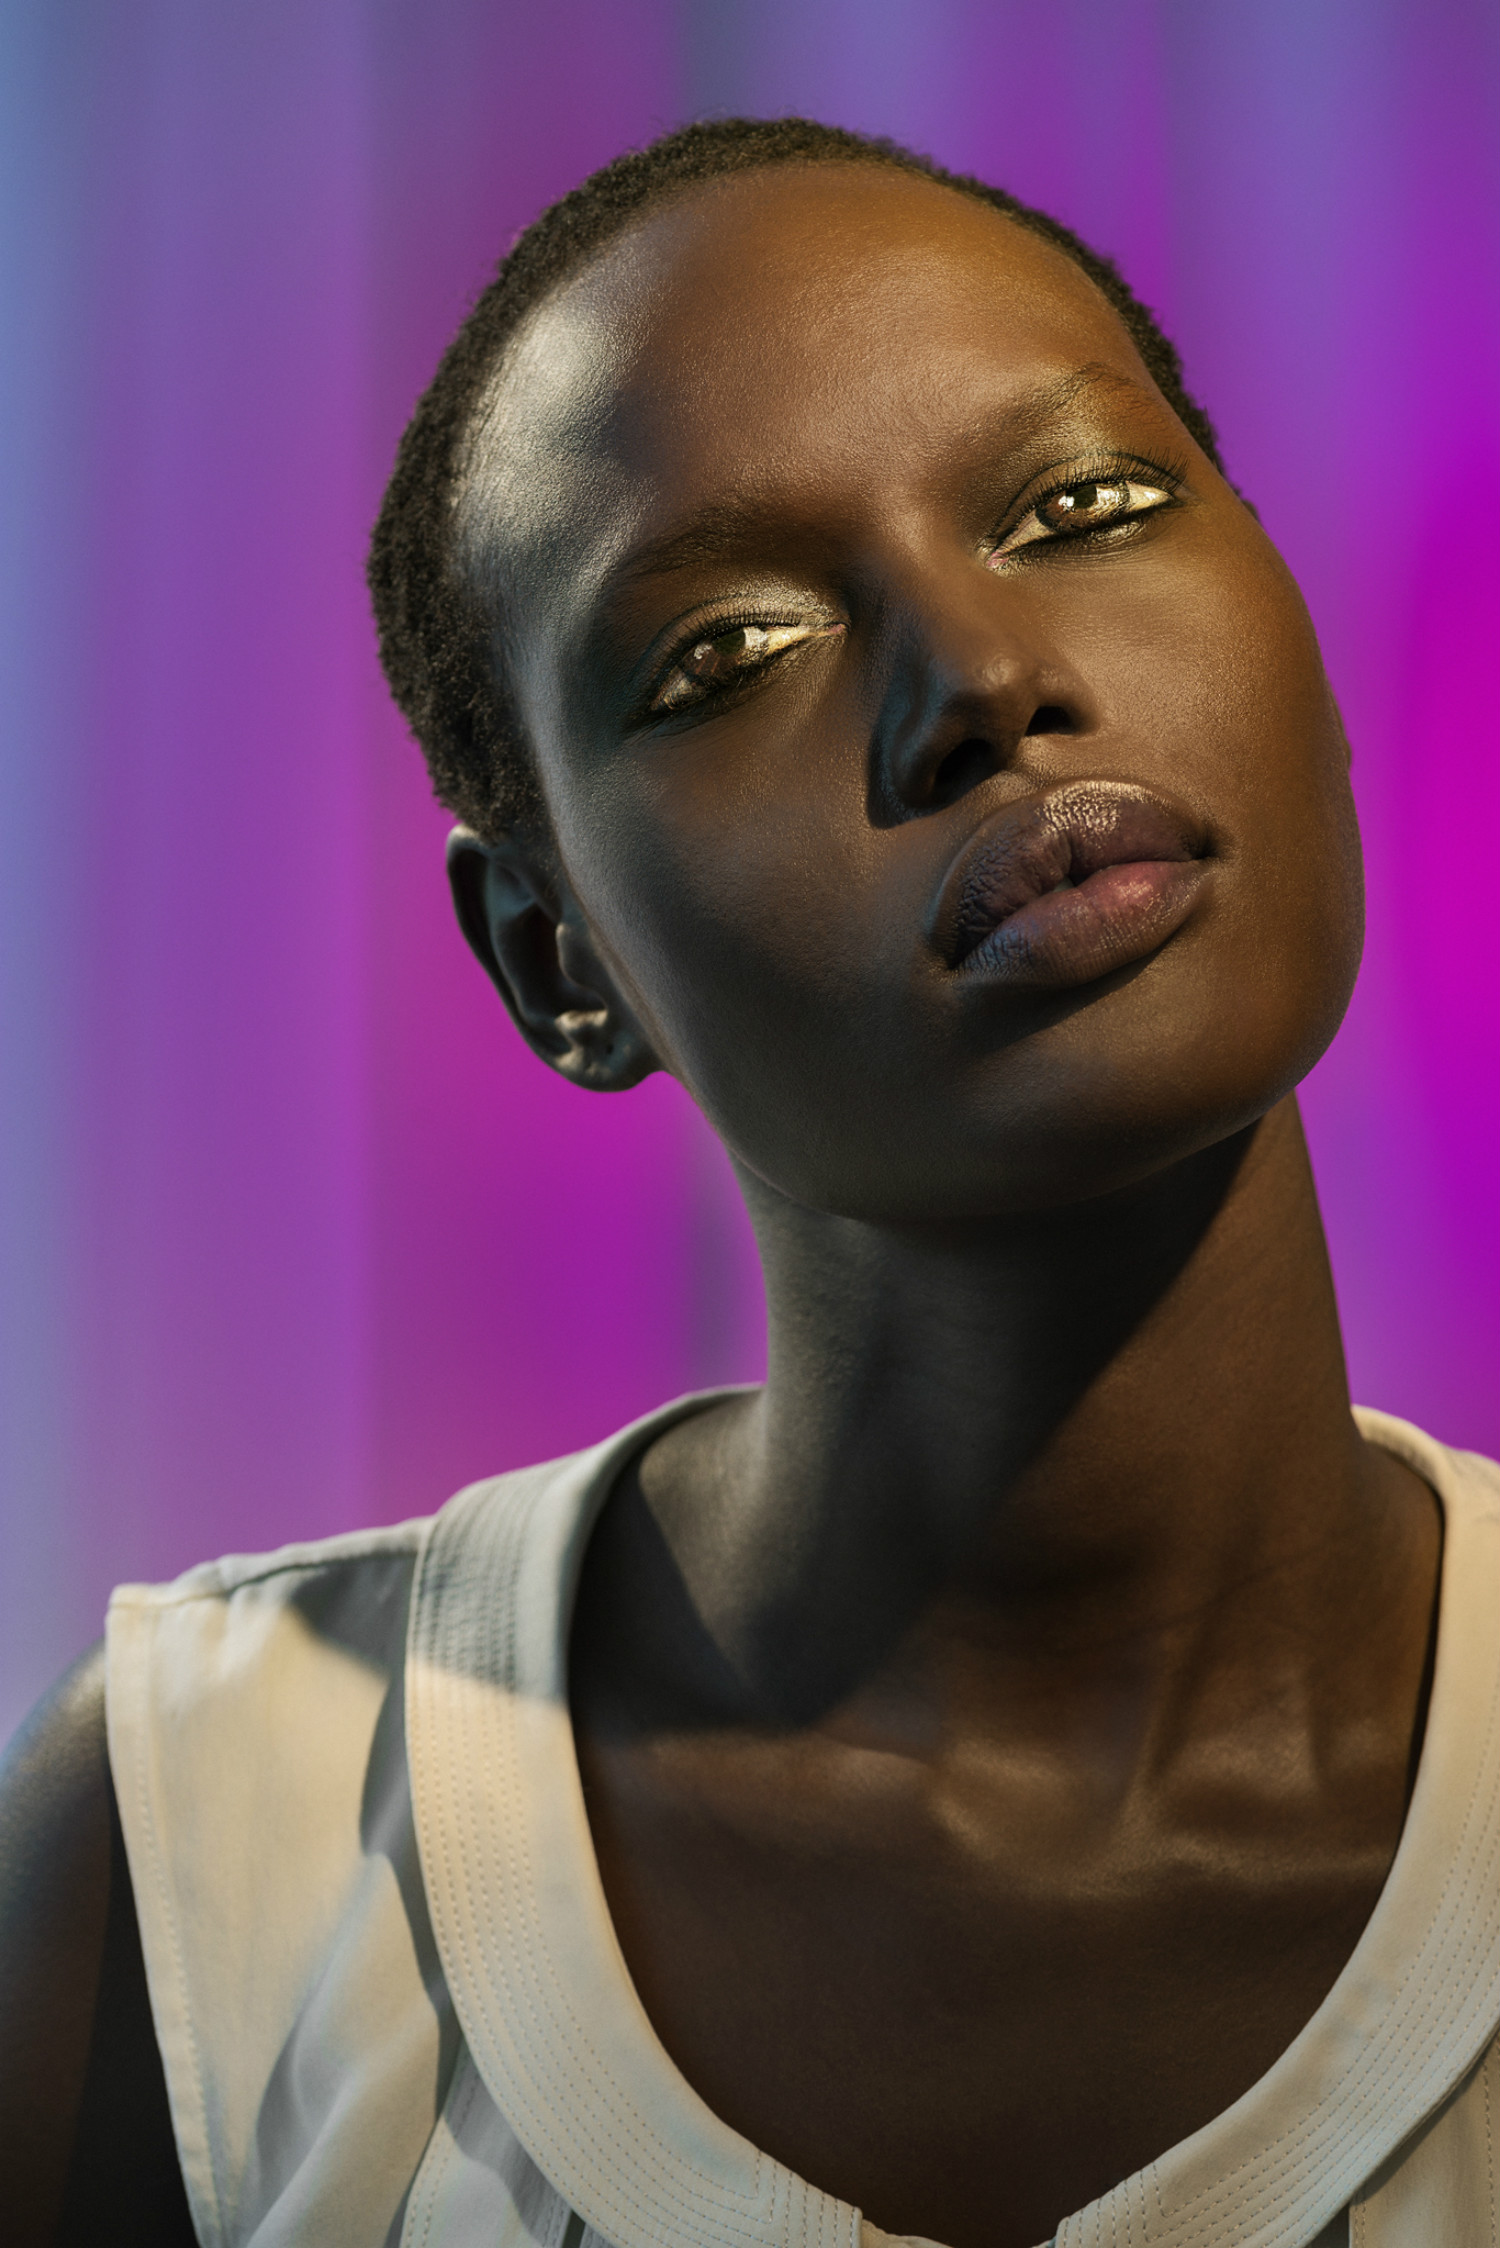 laurie simmons how we see eyes photography model illusions surreal alek wek